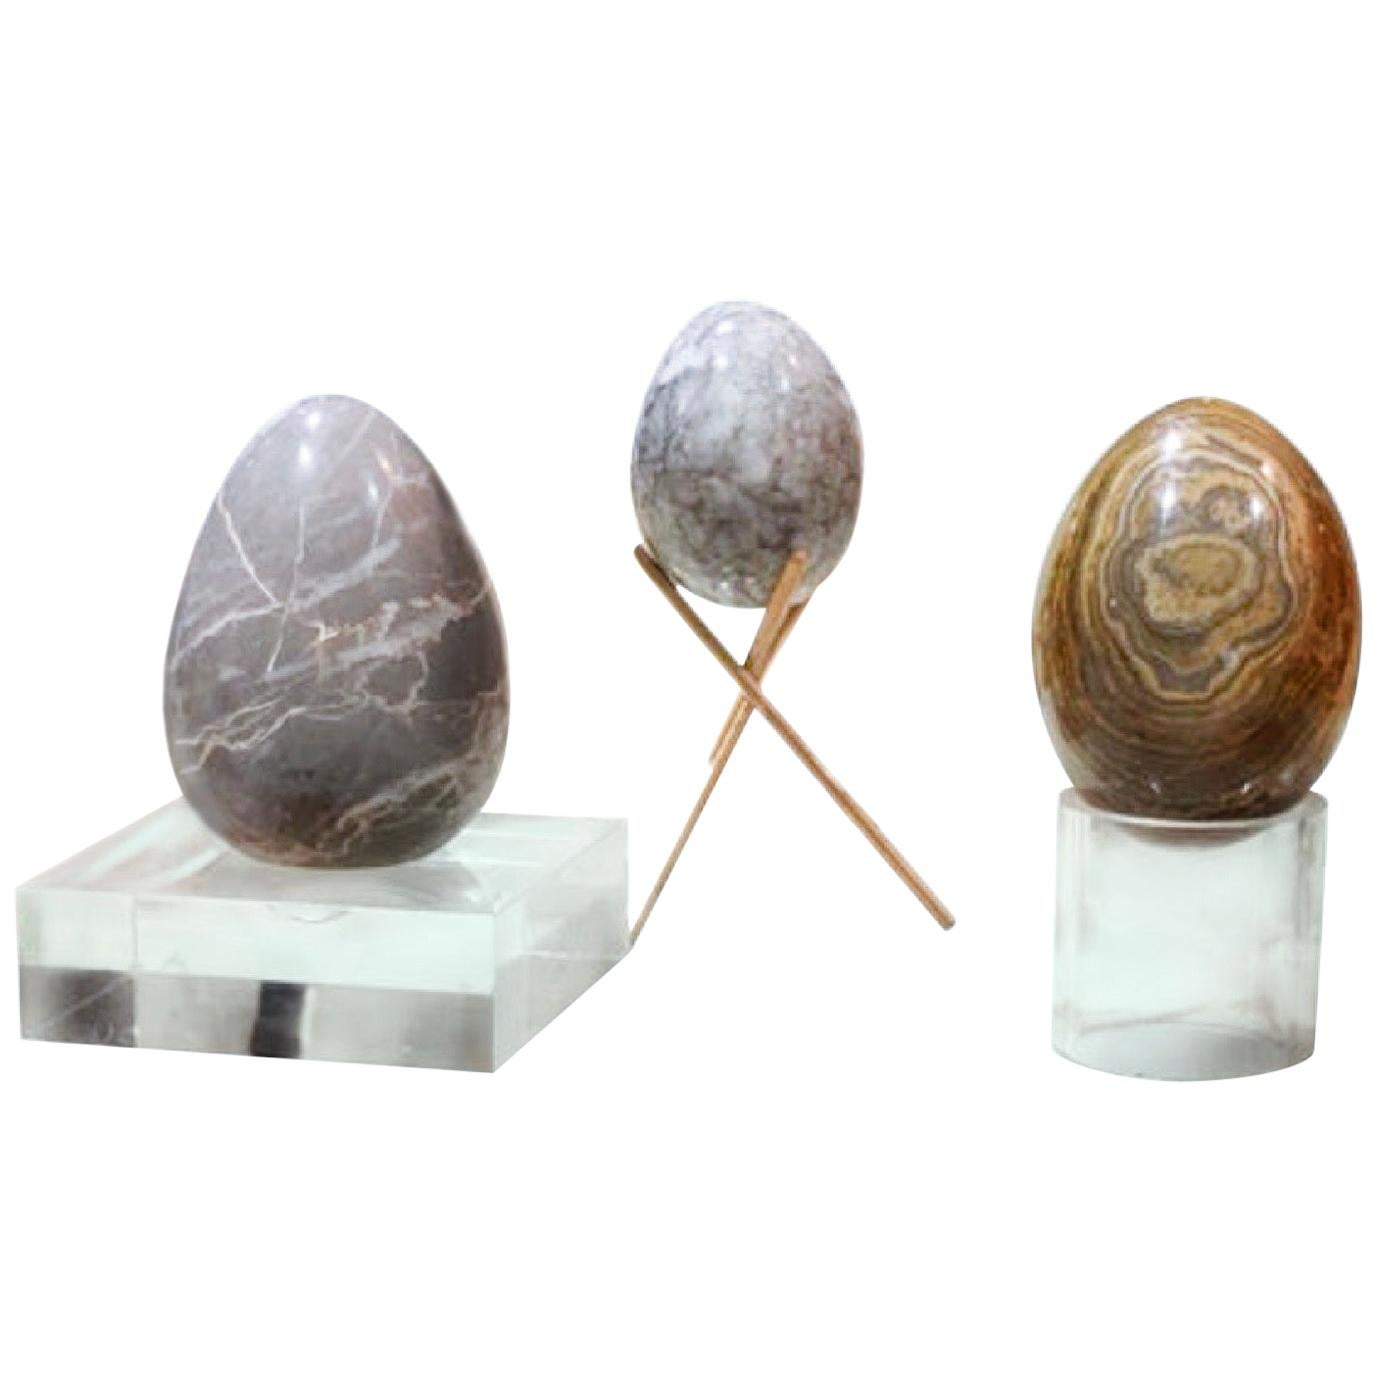 Organic Modern Hand Carved Stone Egg Sculptural Set with Brass and Lucite Bases